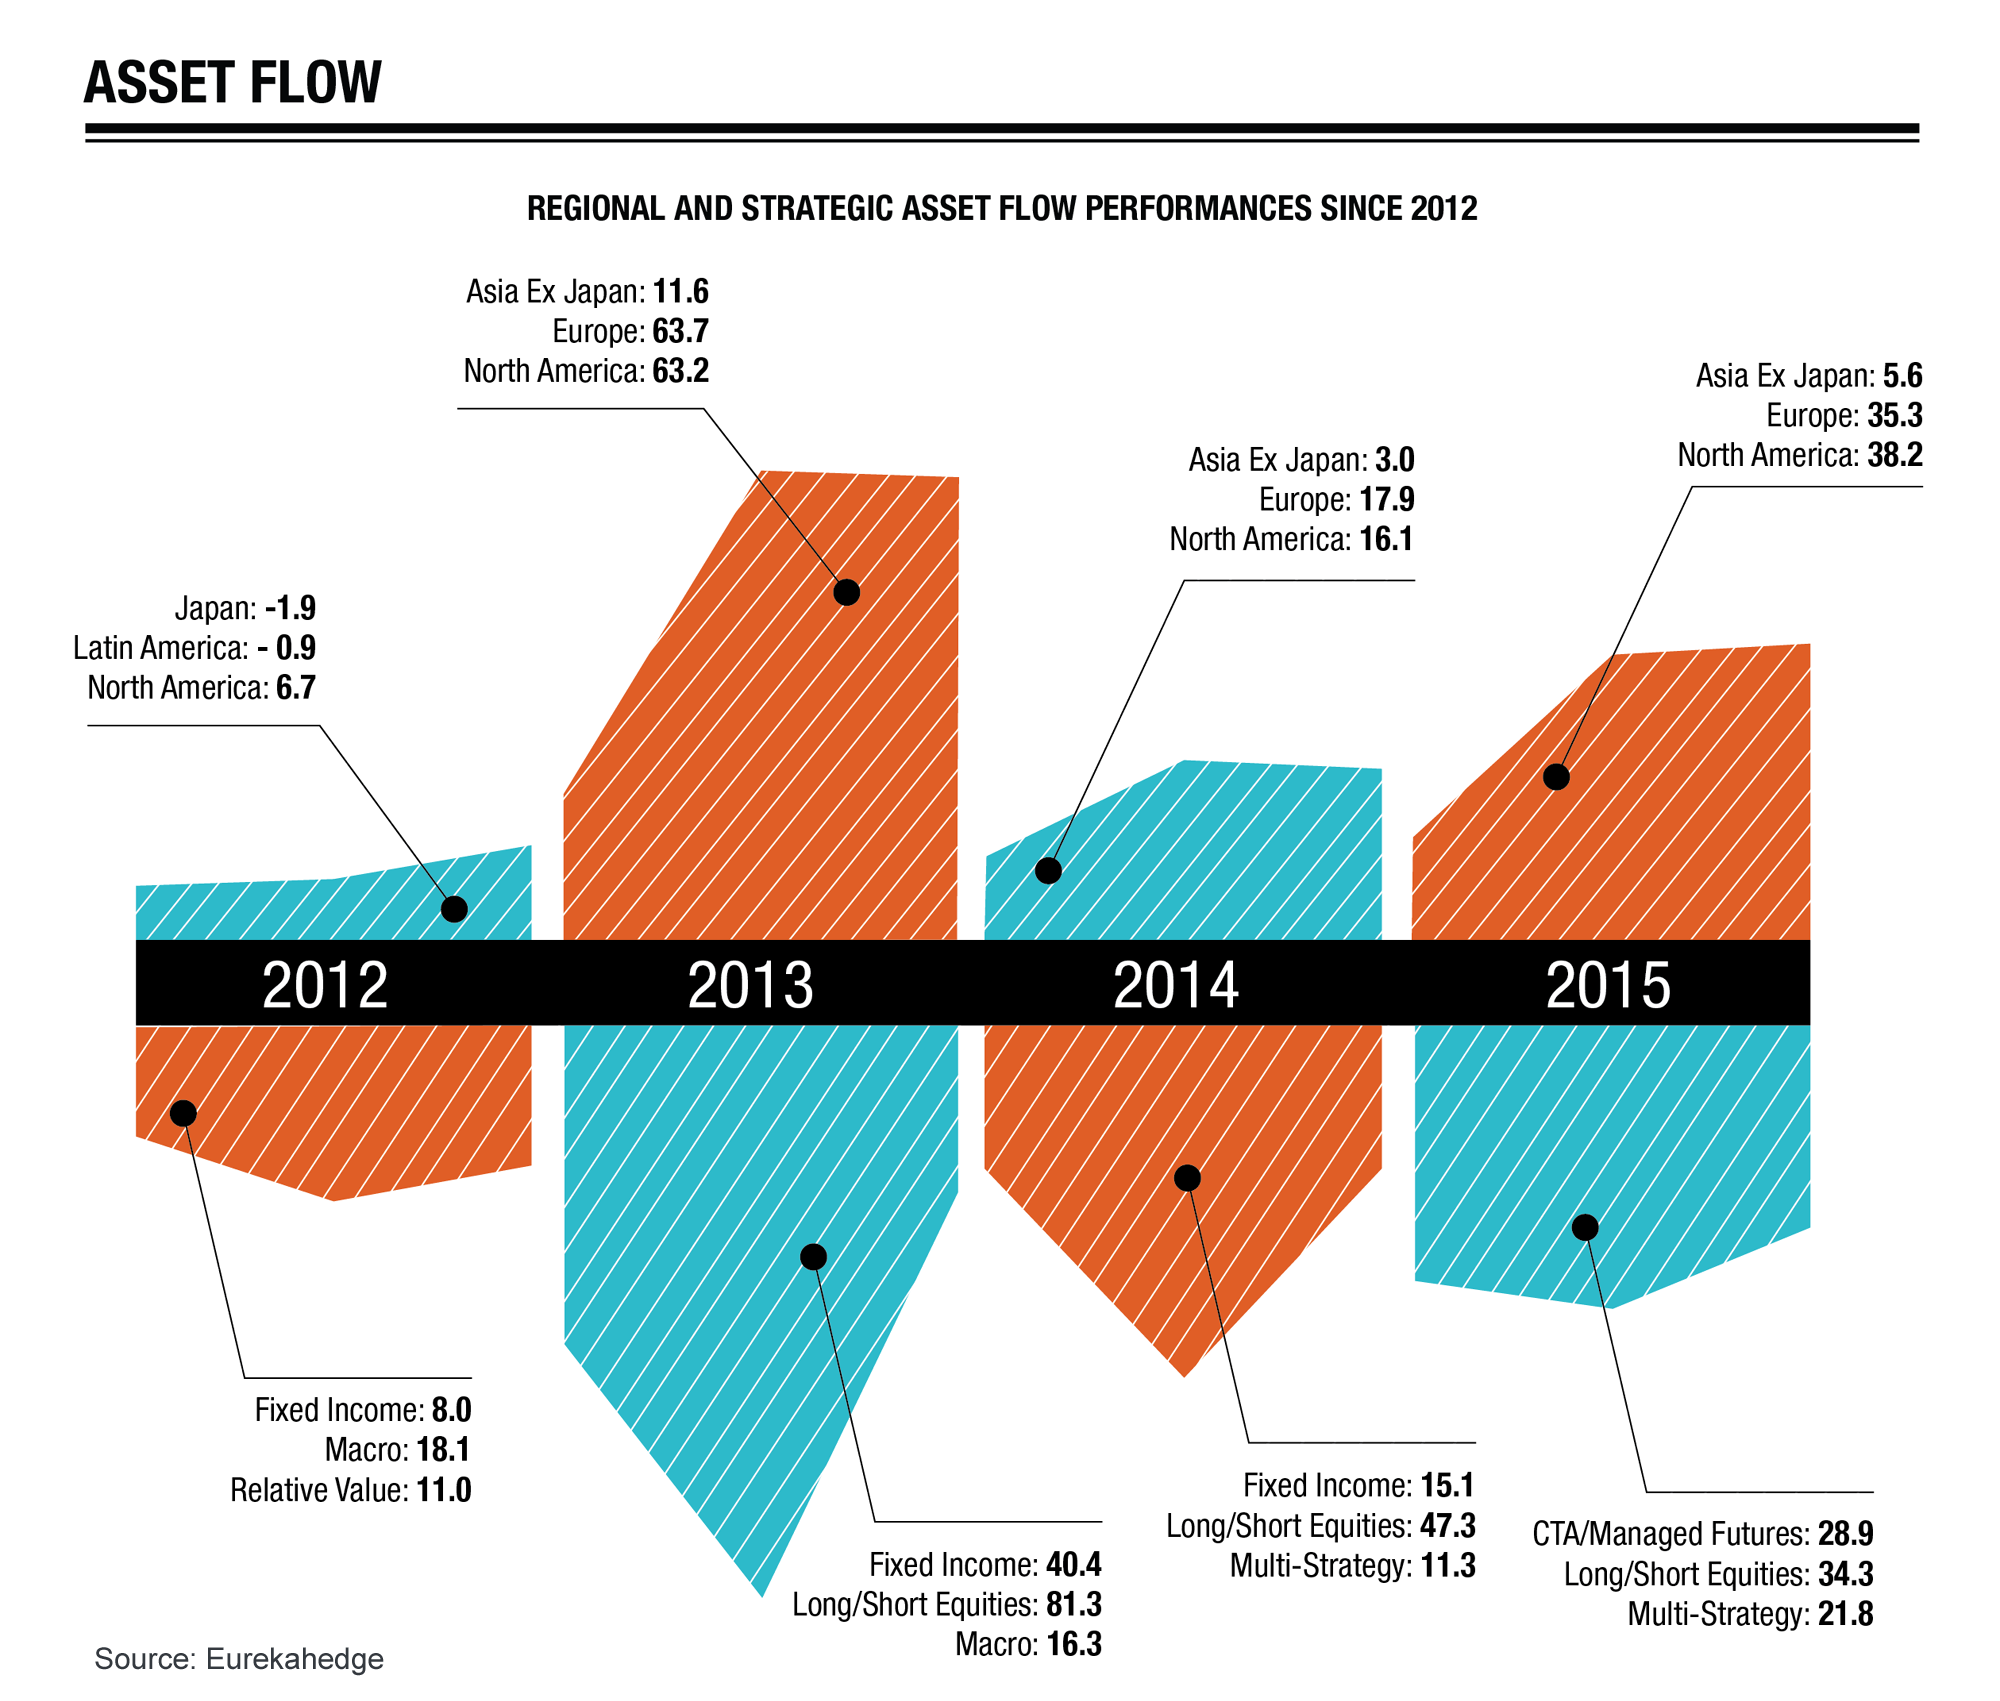 Hedge Funds 2015 Overview Infographic - Regional and strategic asset flow performance 2012 to 2015